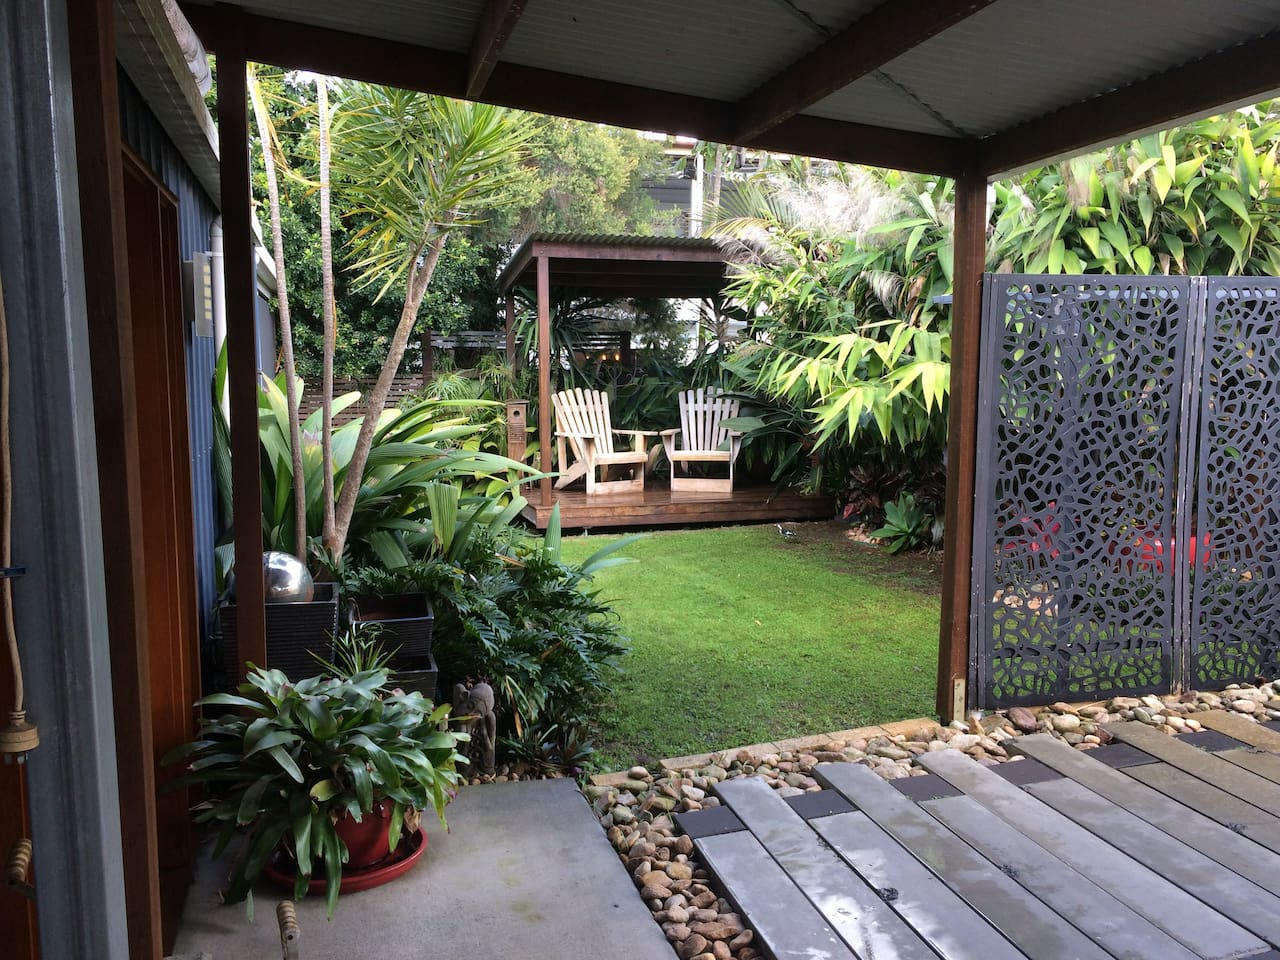 Tranquil Garden Retreat. Enjoy your morning with a coffee and the morning sun on your face, with the sound of the birds in the trees. This little area gives you a relaxed chill out space that brings you back to nature.